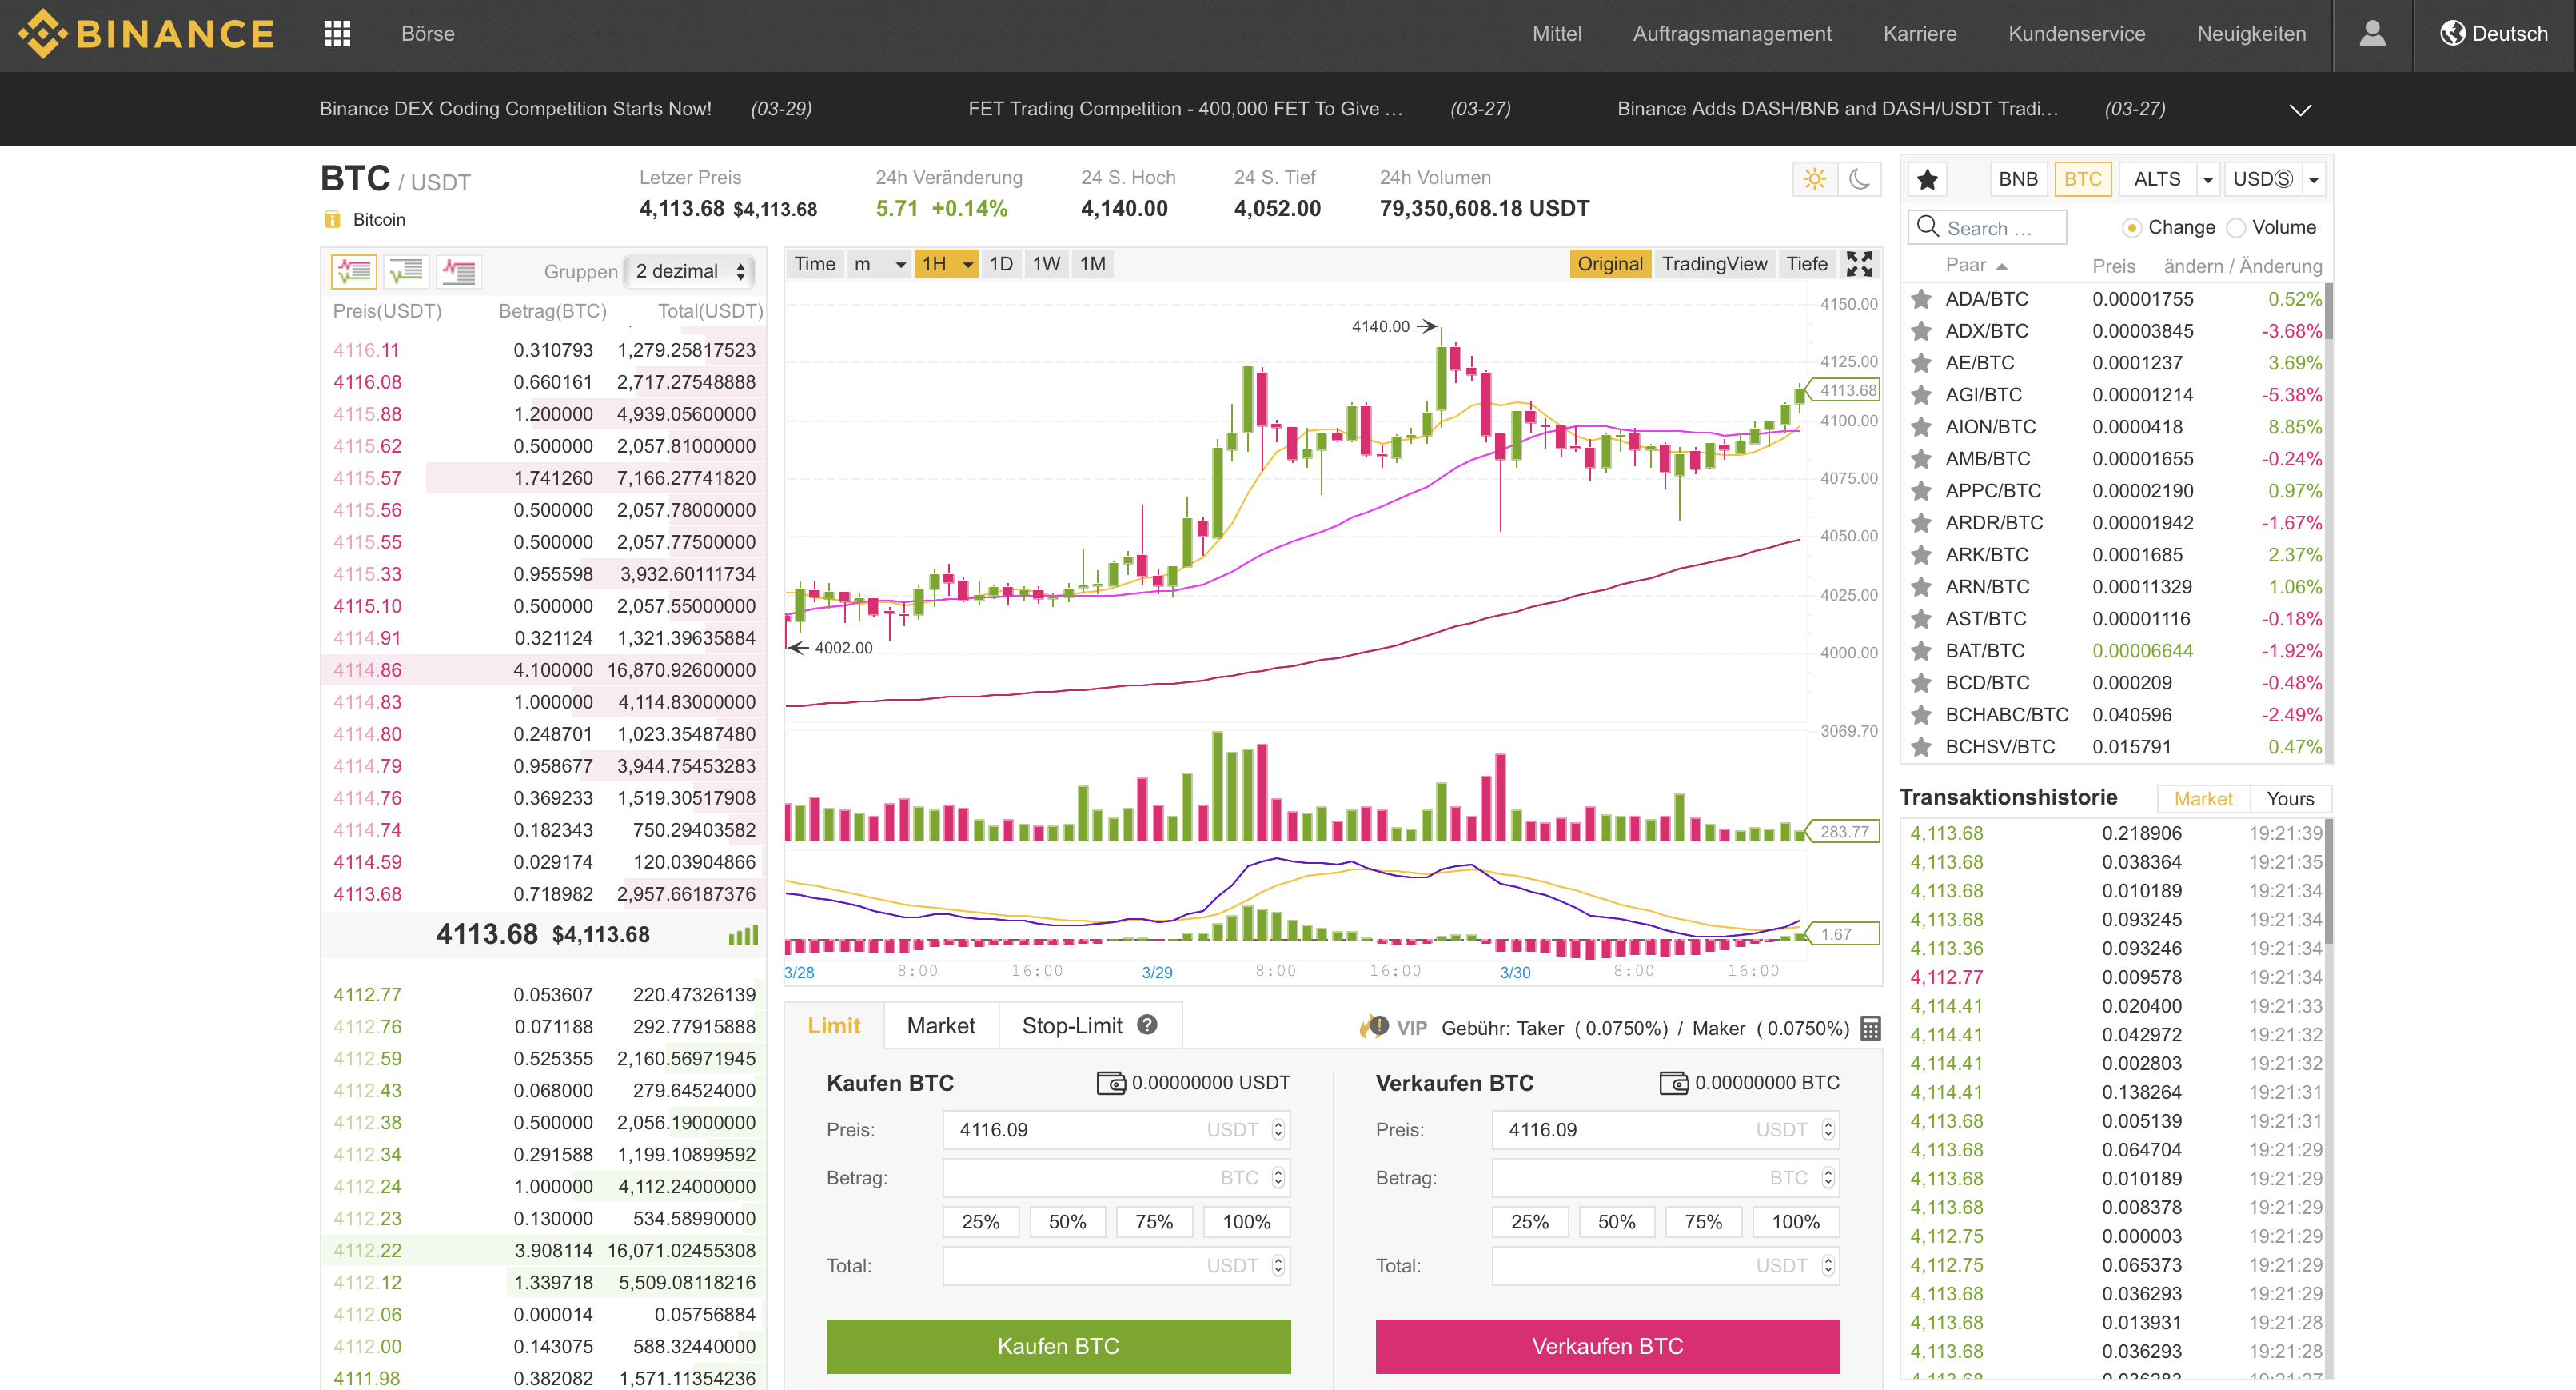 Binance prijsanalyse